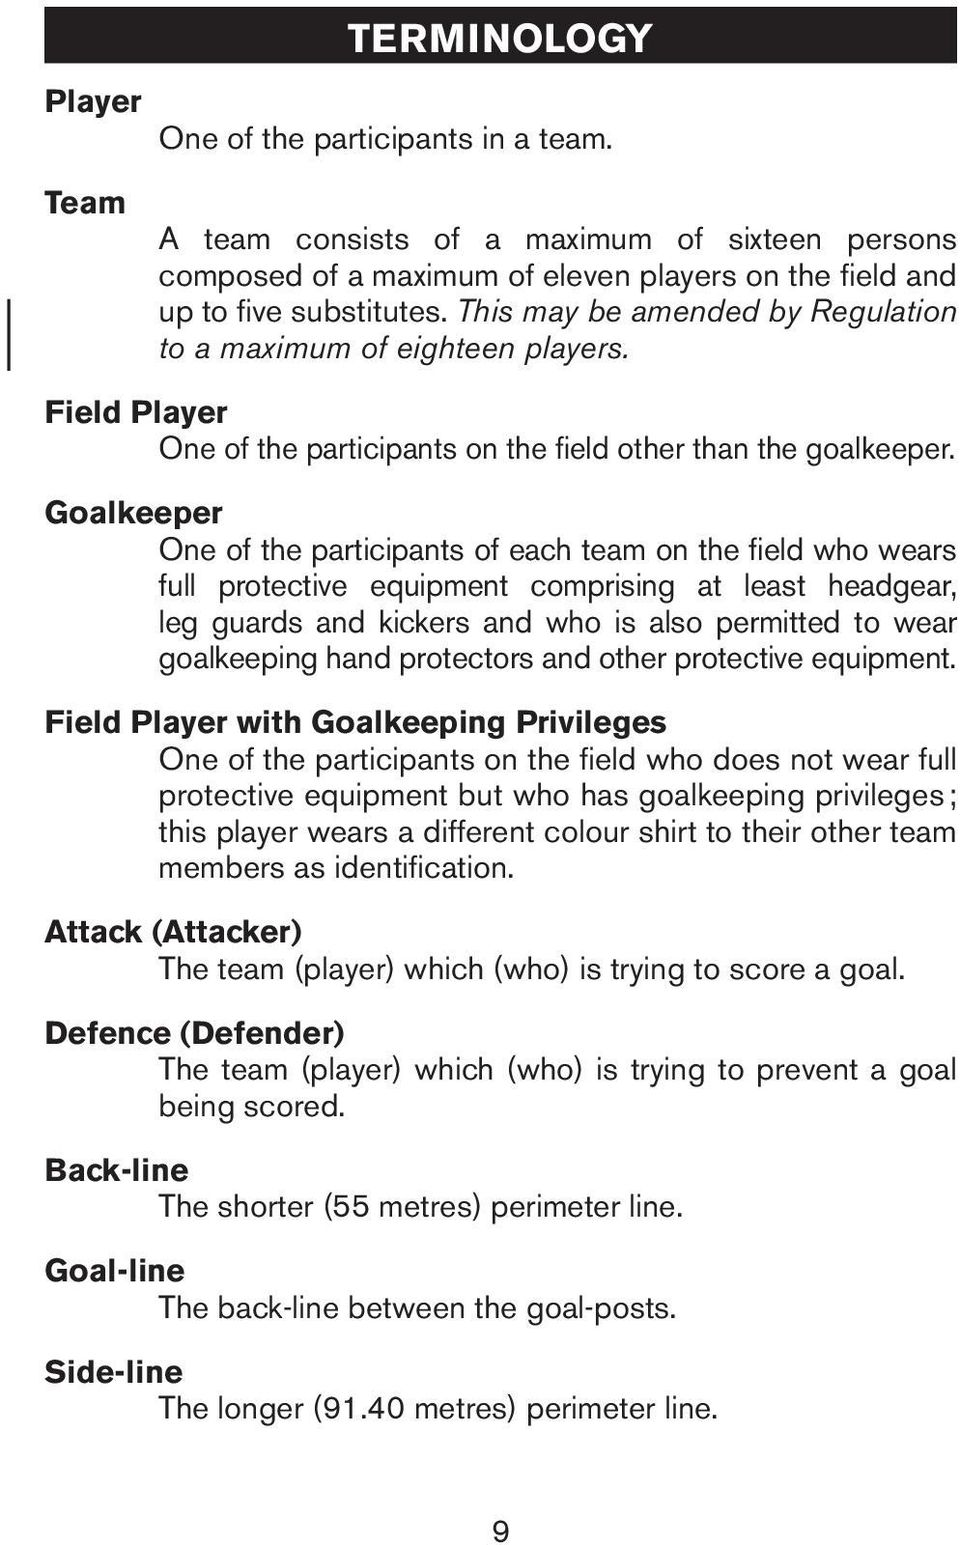 Golkeeper One of the prticipnts of ech tem on the field who wers full protective equipment comprising t lest hedger, leg gurds nd kickers nd who is lso permitted to wer golkeeping hnd protectors nd